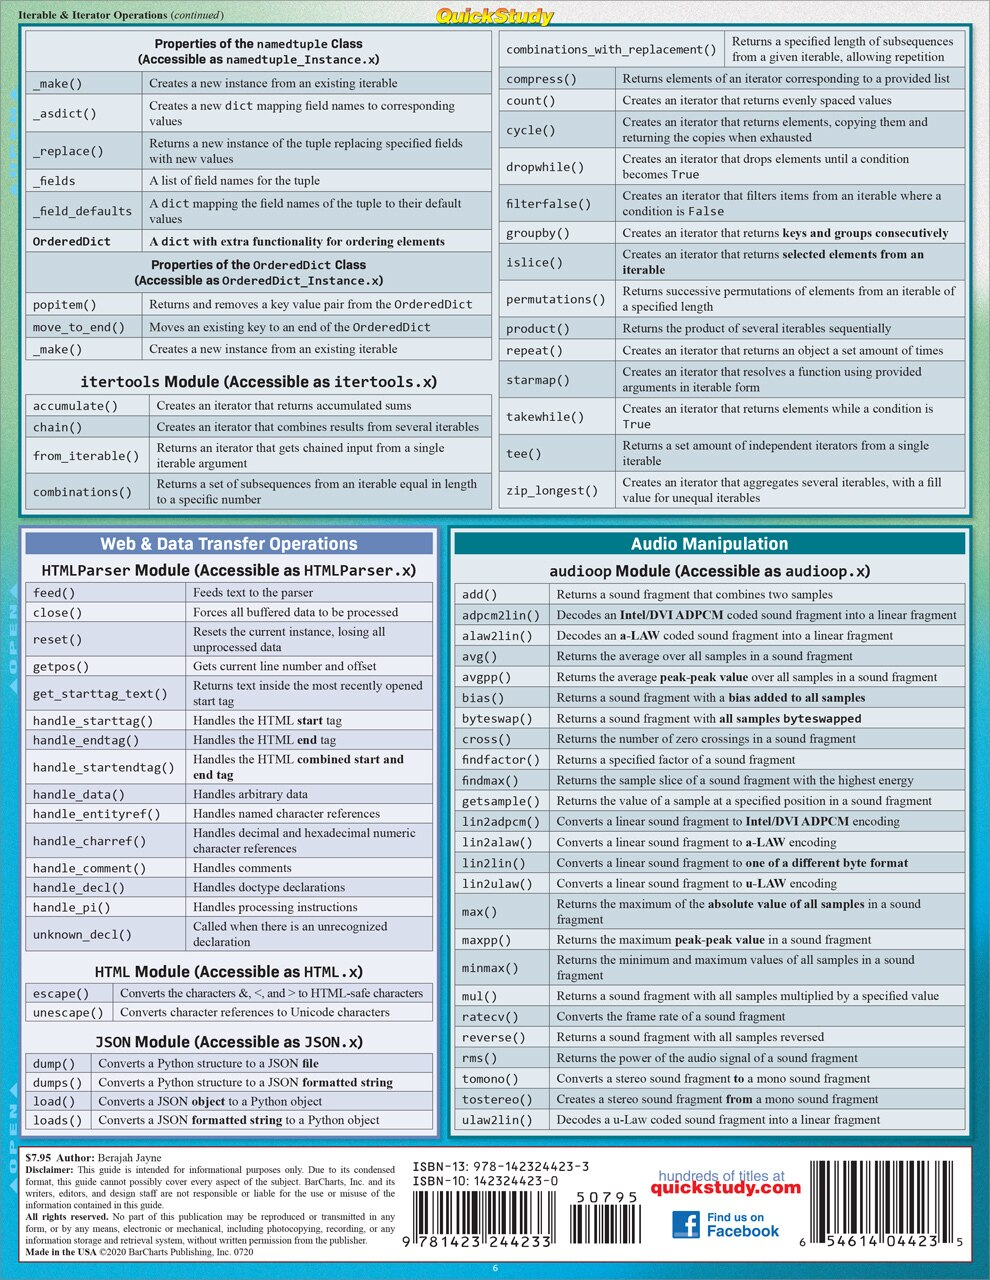 Quick Study QuickStudy Python Standard Library Laminated Reference Guide BarCharts Publishing Computer Programming /Coding Language Outline Back Image